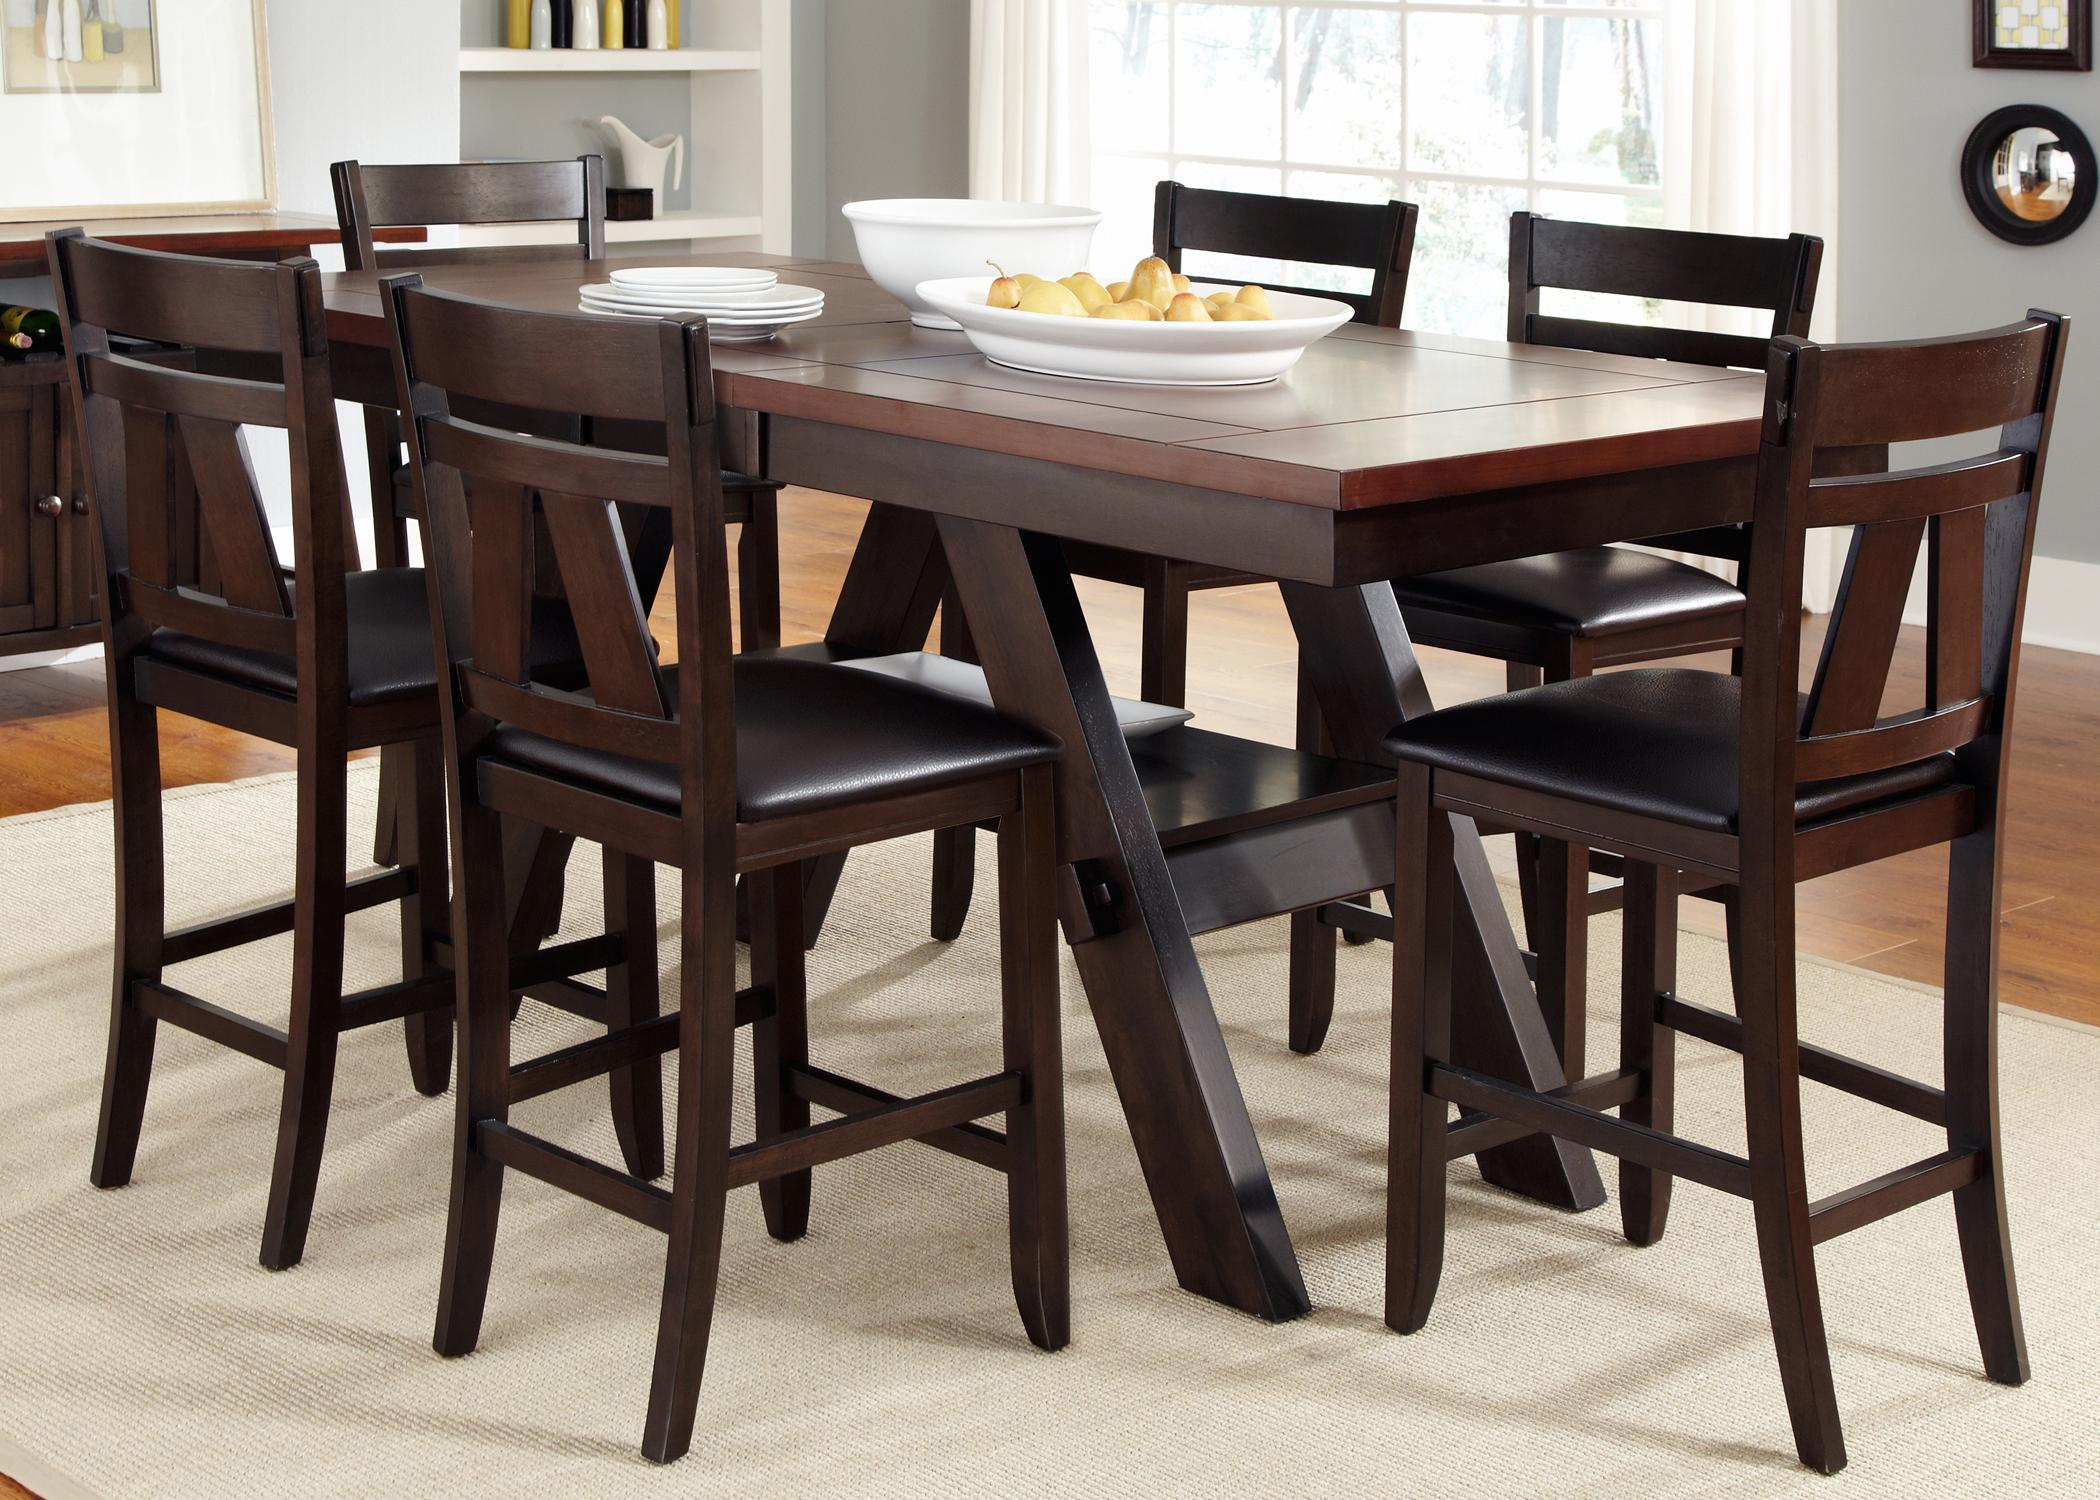 Liberty Furniture Lawson Gathering Table with Counter Height Chairs - Item Number 116-GT4078B & Liberty Furniture Lawson 7 Piece Trestle Gathering Table with ... islam-shia.org